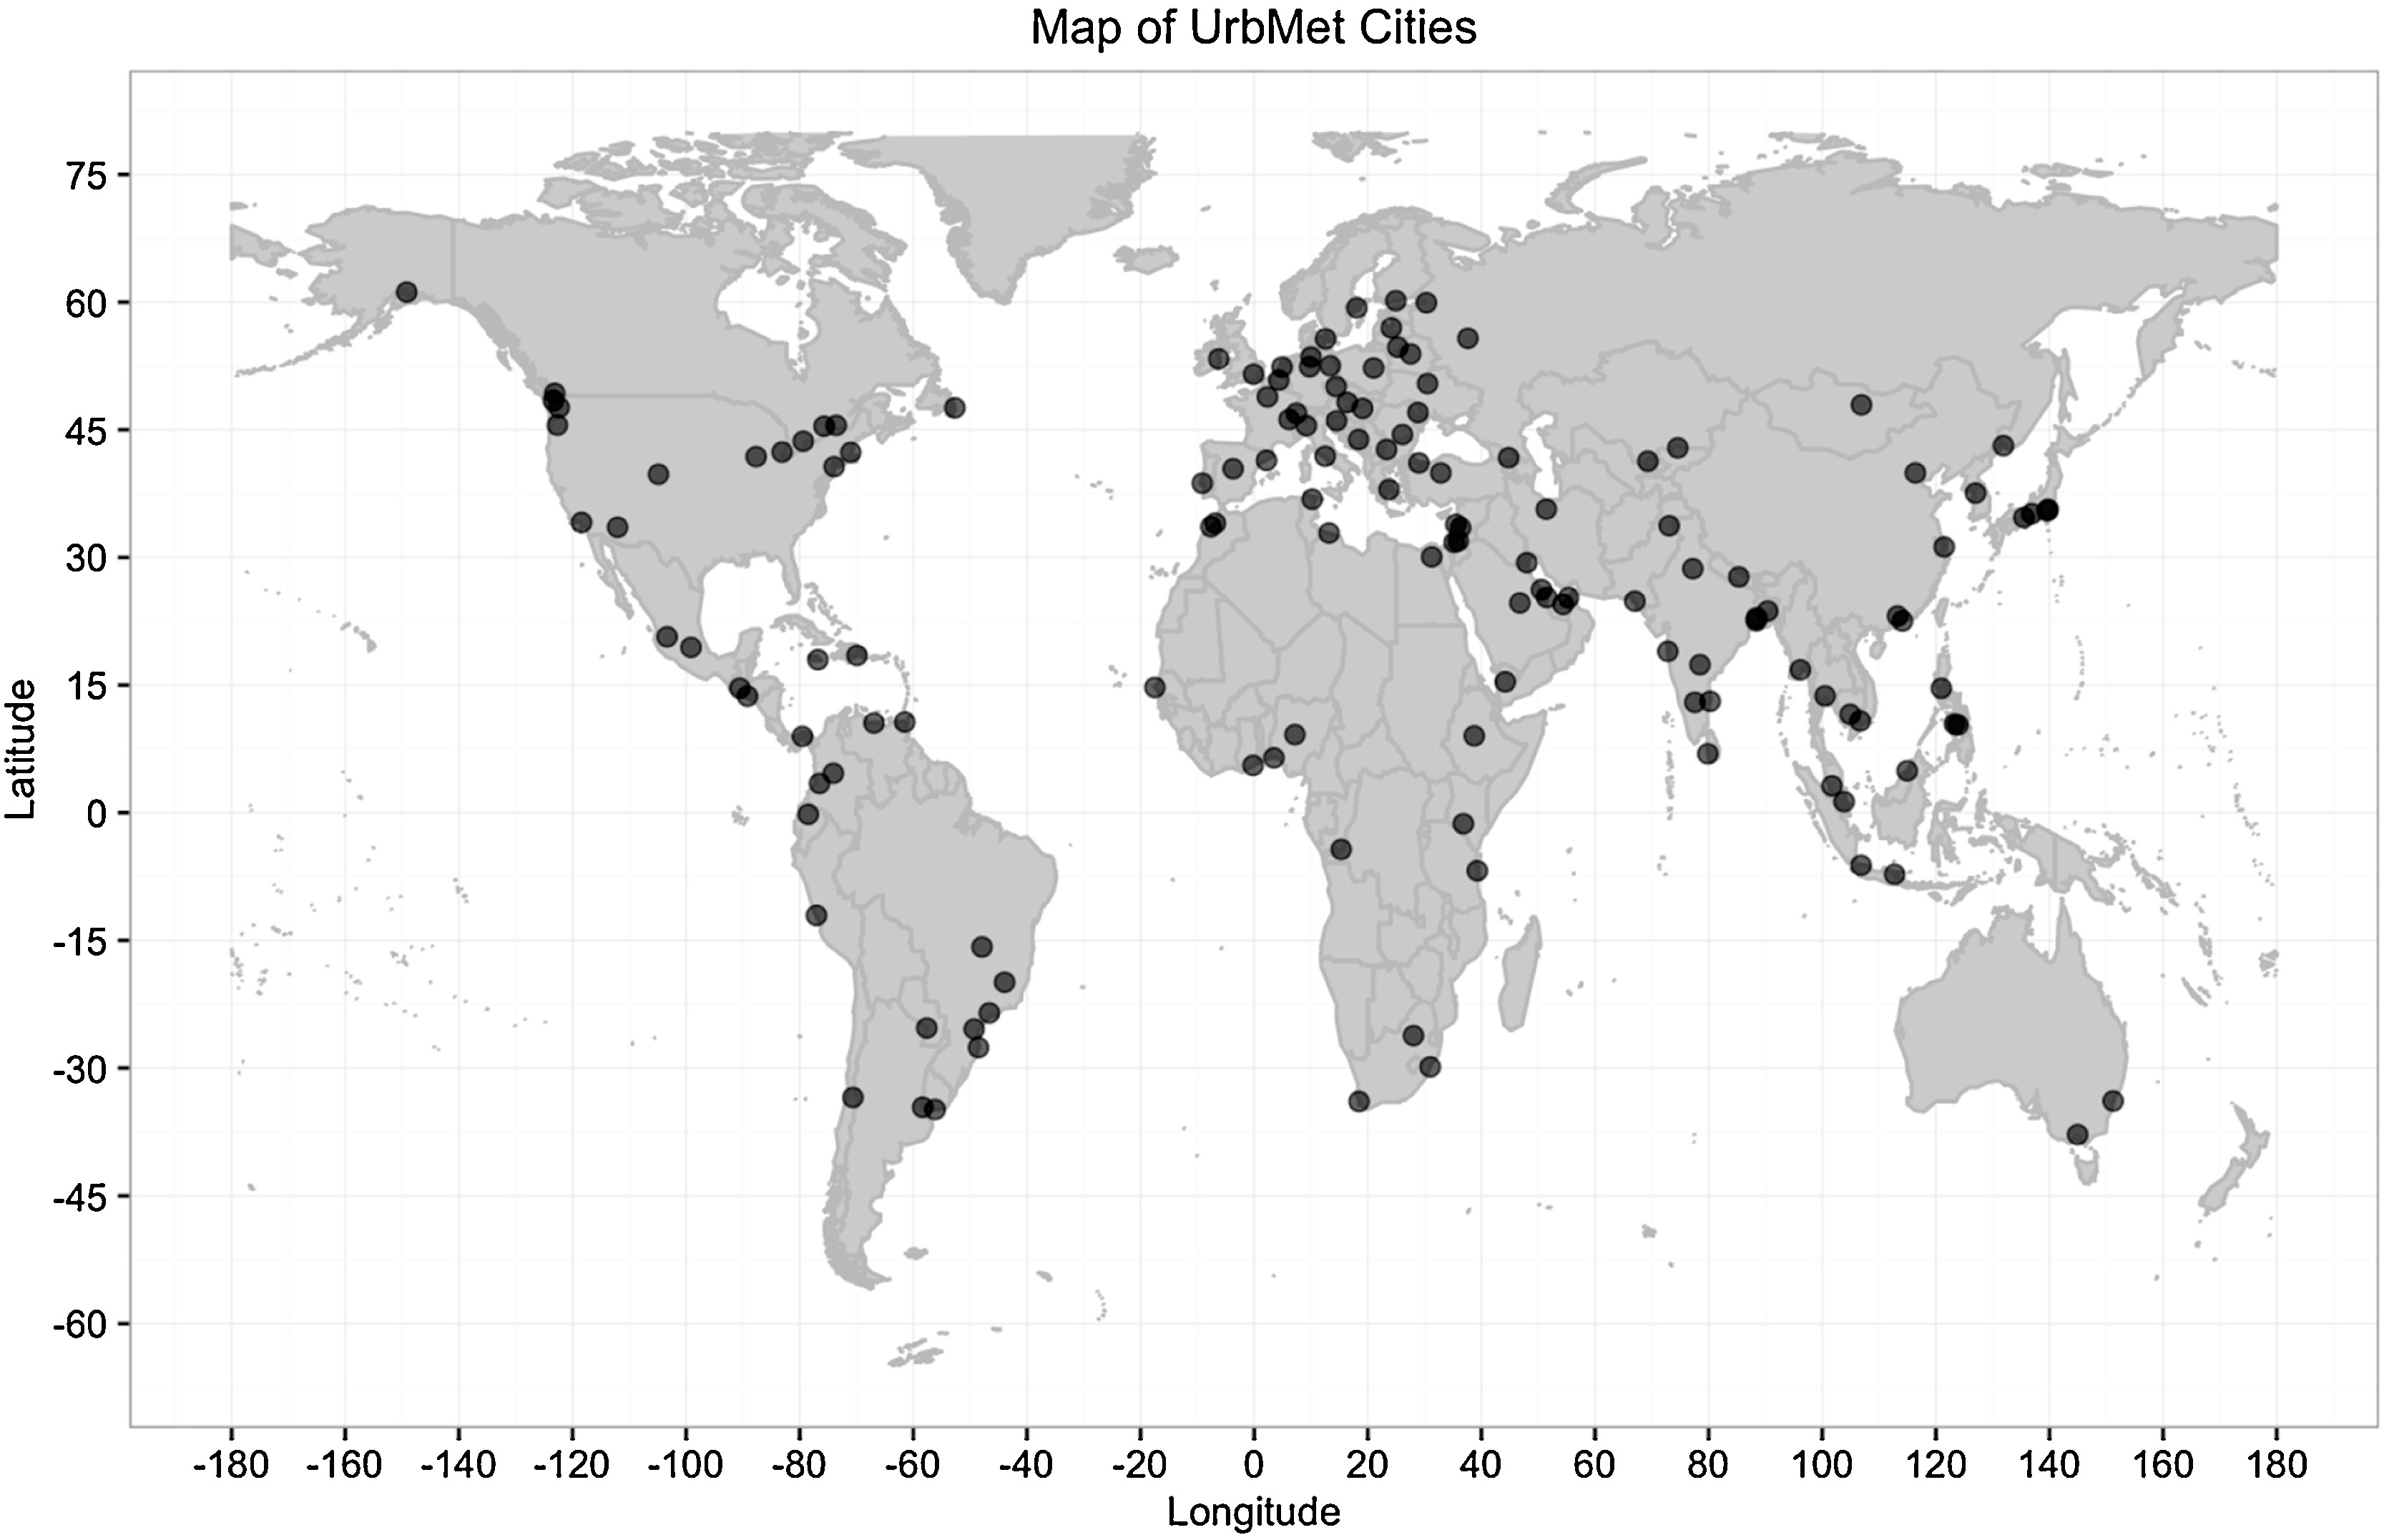 World map of the 142 cities in the UrbMet database.